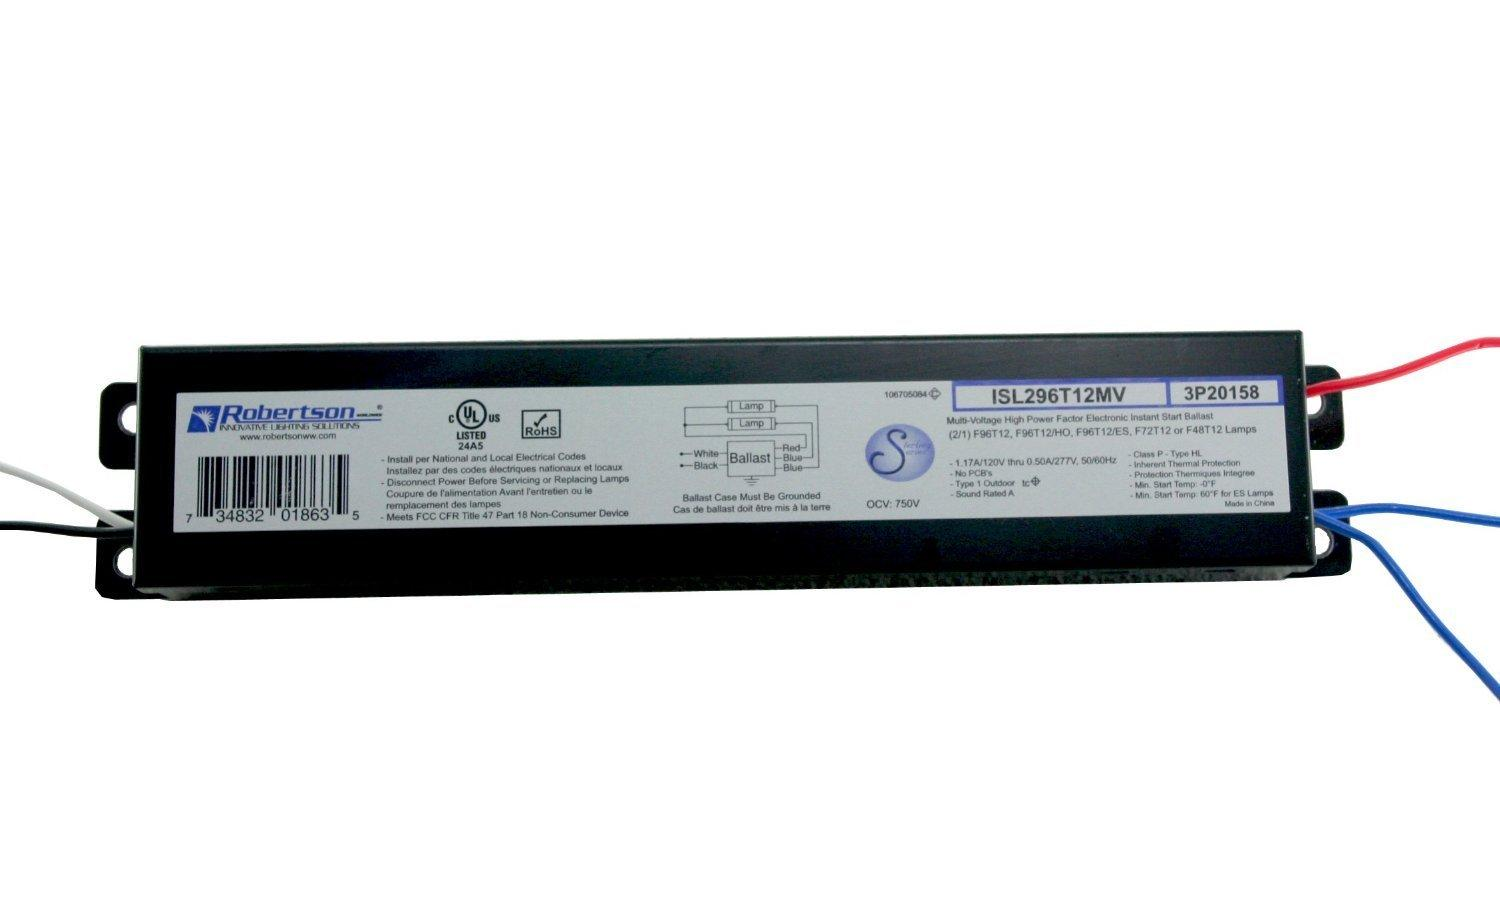 robertson p fluorescent eballast for ft linear lamp view larger